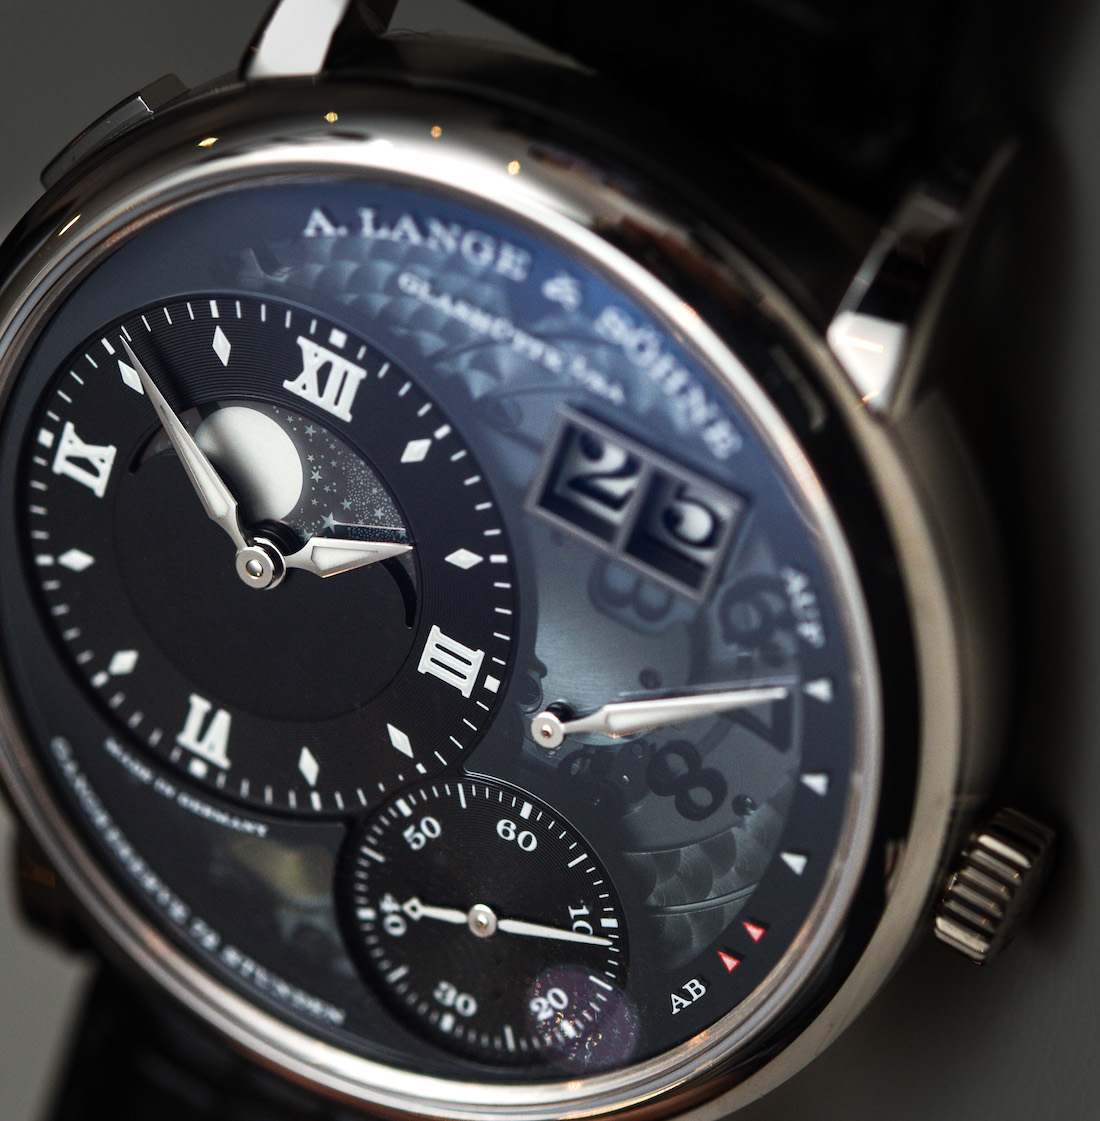 A. Lange & Söhne Grand Lange 1 Moon Phase 'Lumen' Watch Hands-On